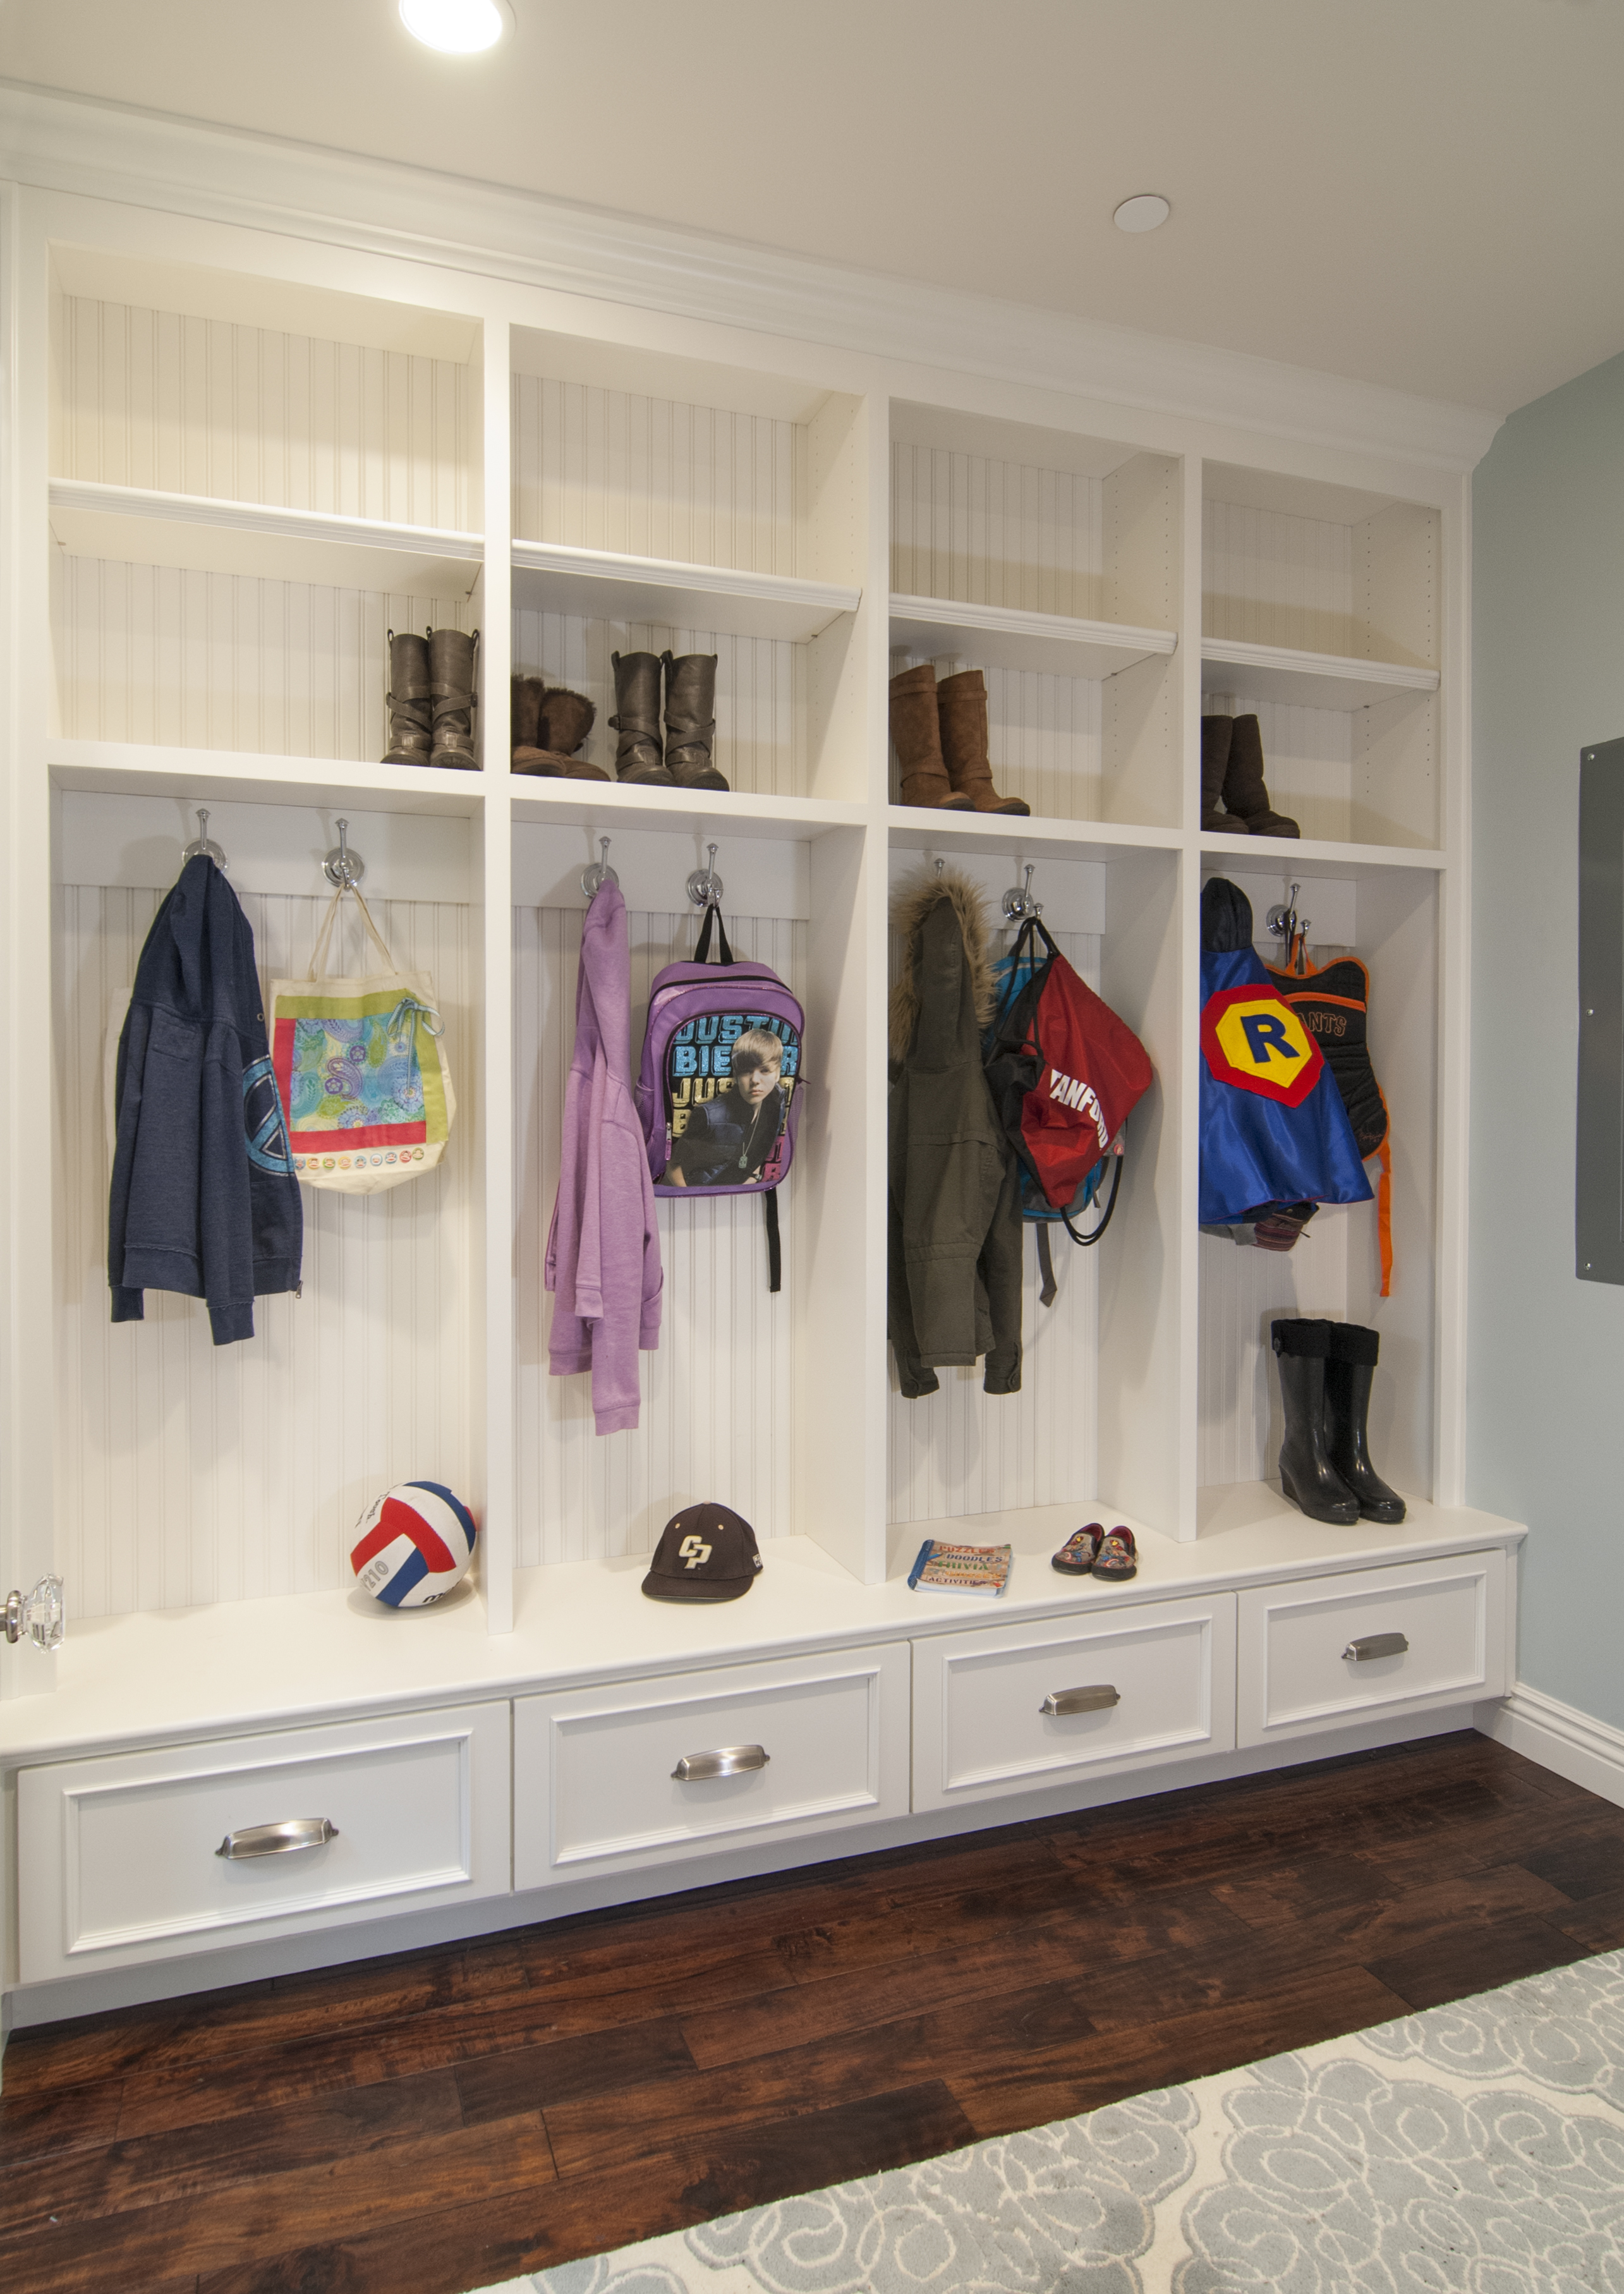 Beautiful White Mudroom Built-In with Beadboard Backing, Open Shelves and Silver Hardware